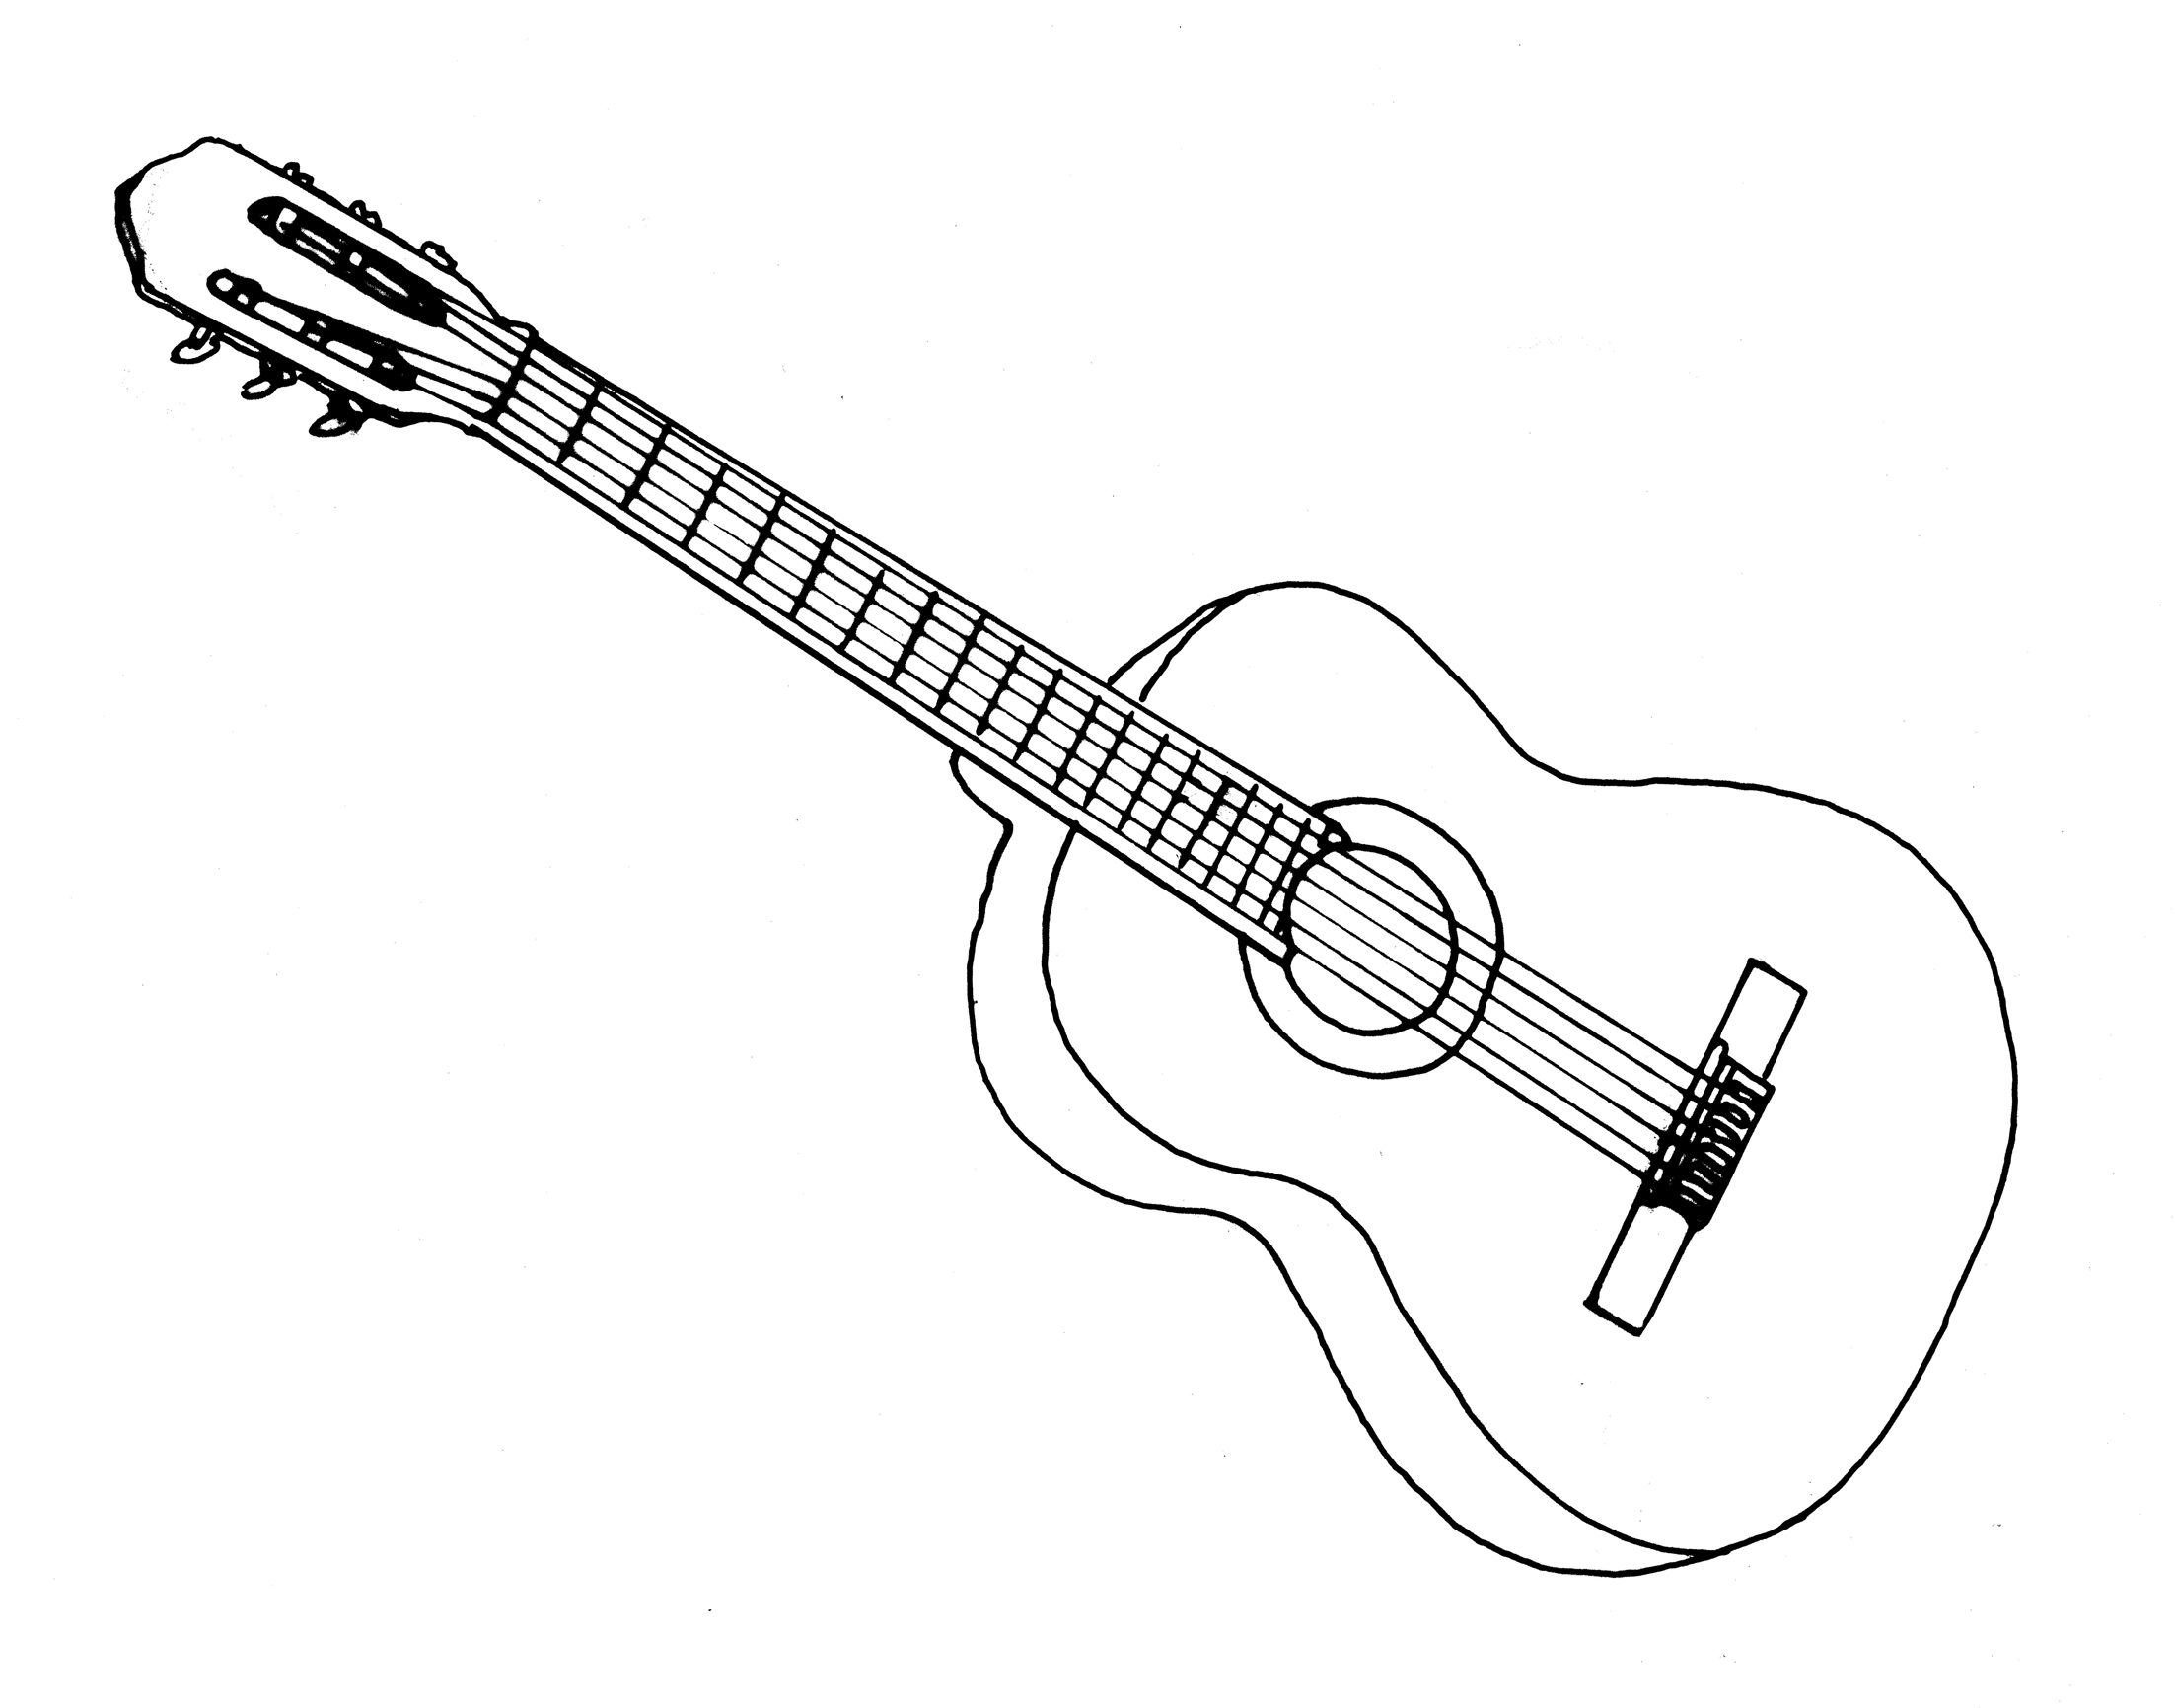 how to sketch a guitar how to draw a rock guitar on the sheet of paper in stages how to guitar sketch a